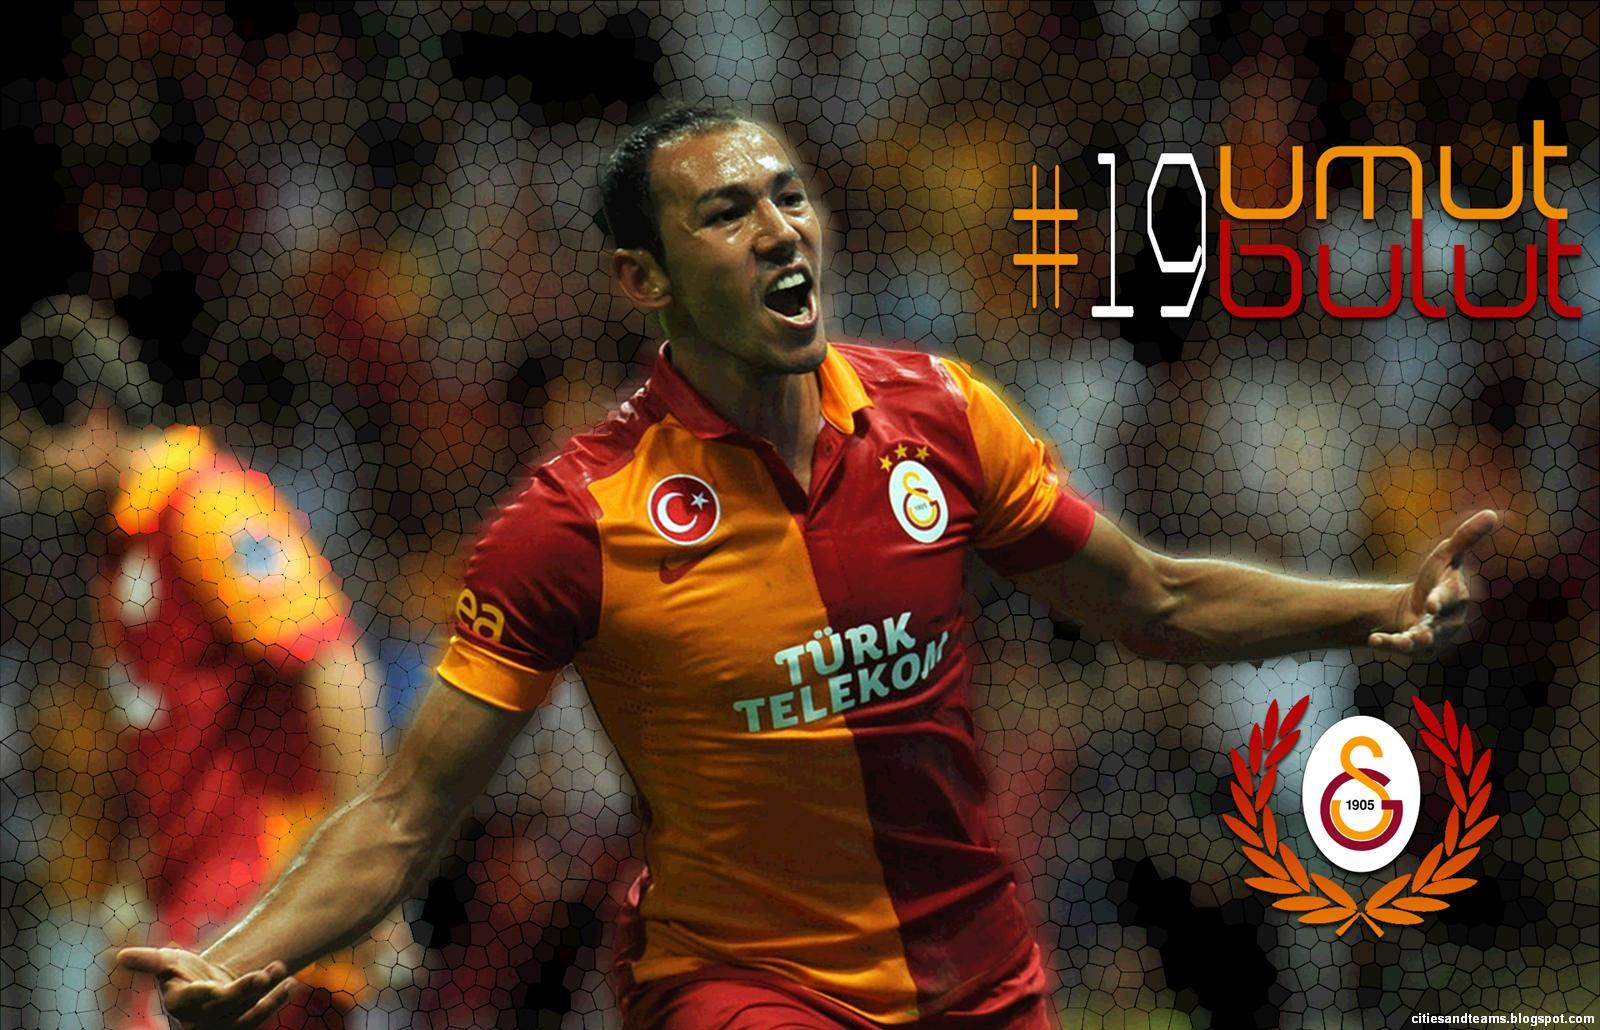 http://3.bp.blogspot.com/-O7eVDCD90GE/UM2uNeLdHMI/AAAAAAAAIy8/U8CZxJ3eOvI/s1600/Umut_Bulut_Galatasaray_Crazy_Energetic_Turkish_Striker_Turkey_Hd_Desktop_Wallpaper_1_citiesandteams.blogspot.com.jpg